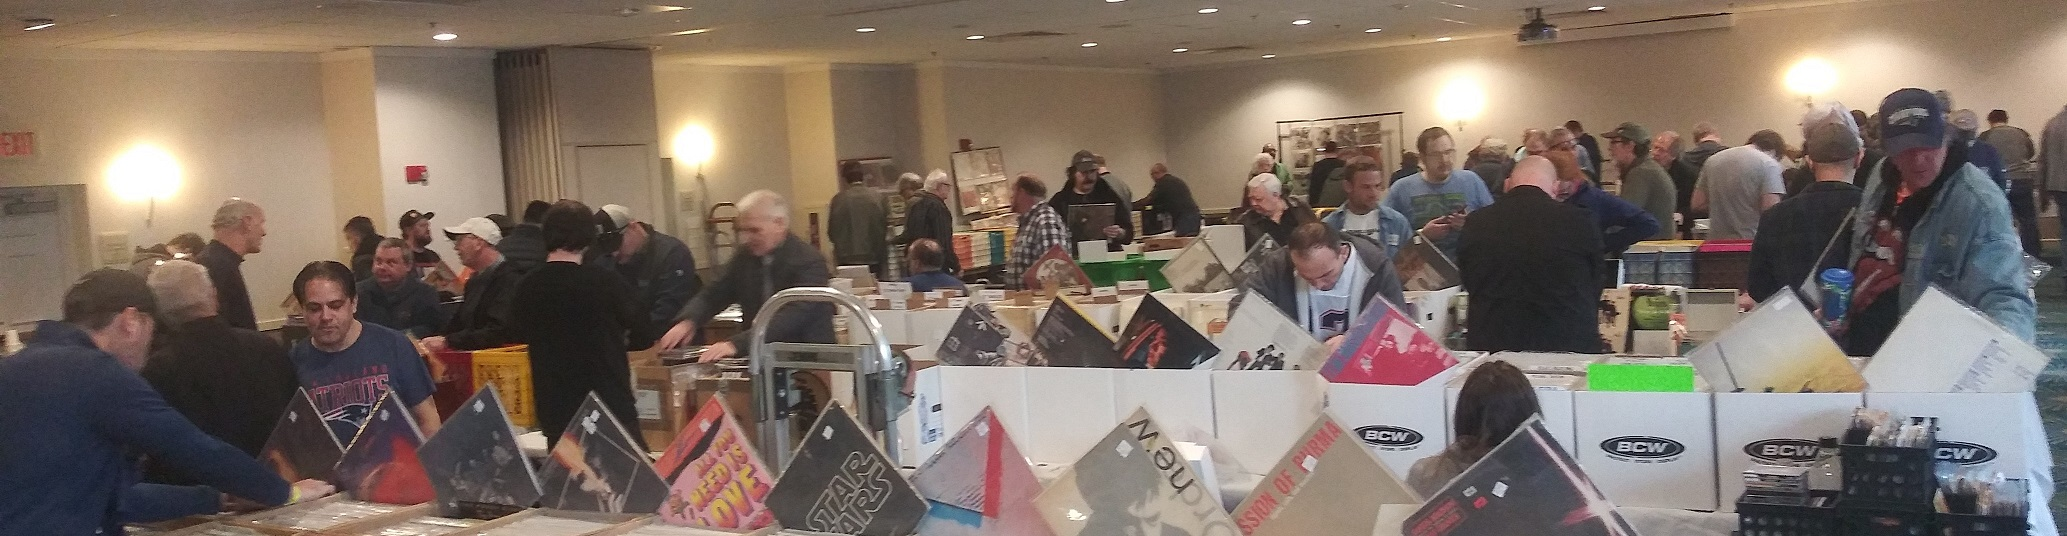 2020 Vinyl Record Shows Fairs Events MA Boston